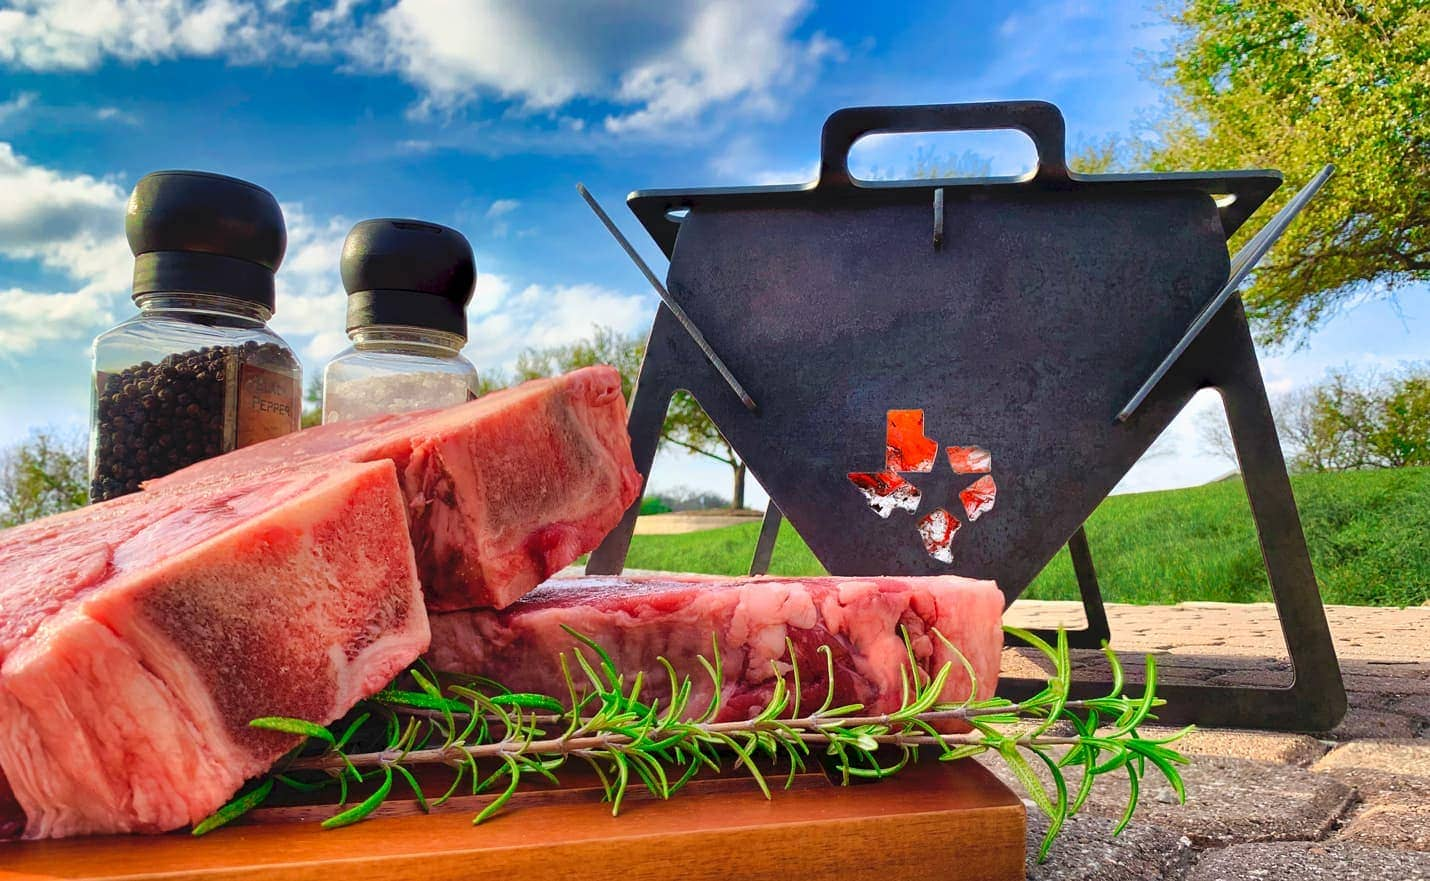 Flash Works Specialties Flat Grill with steaks